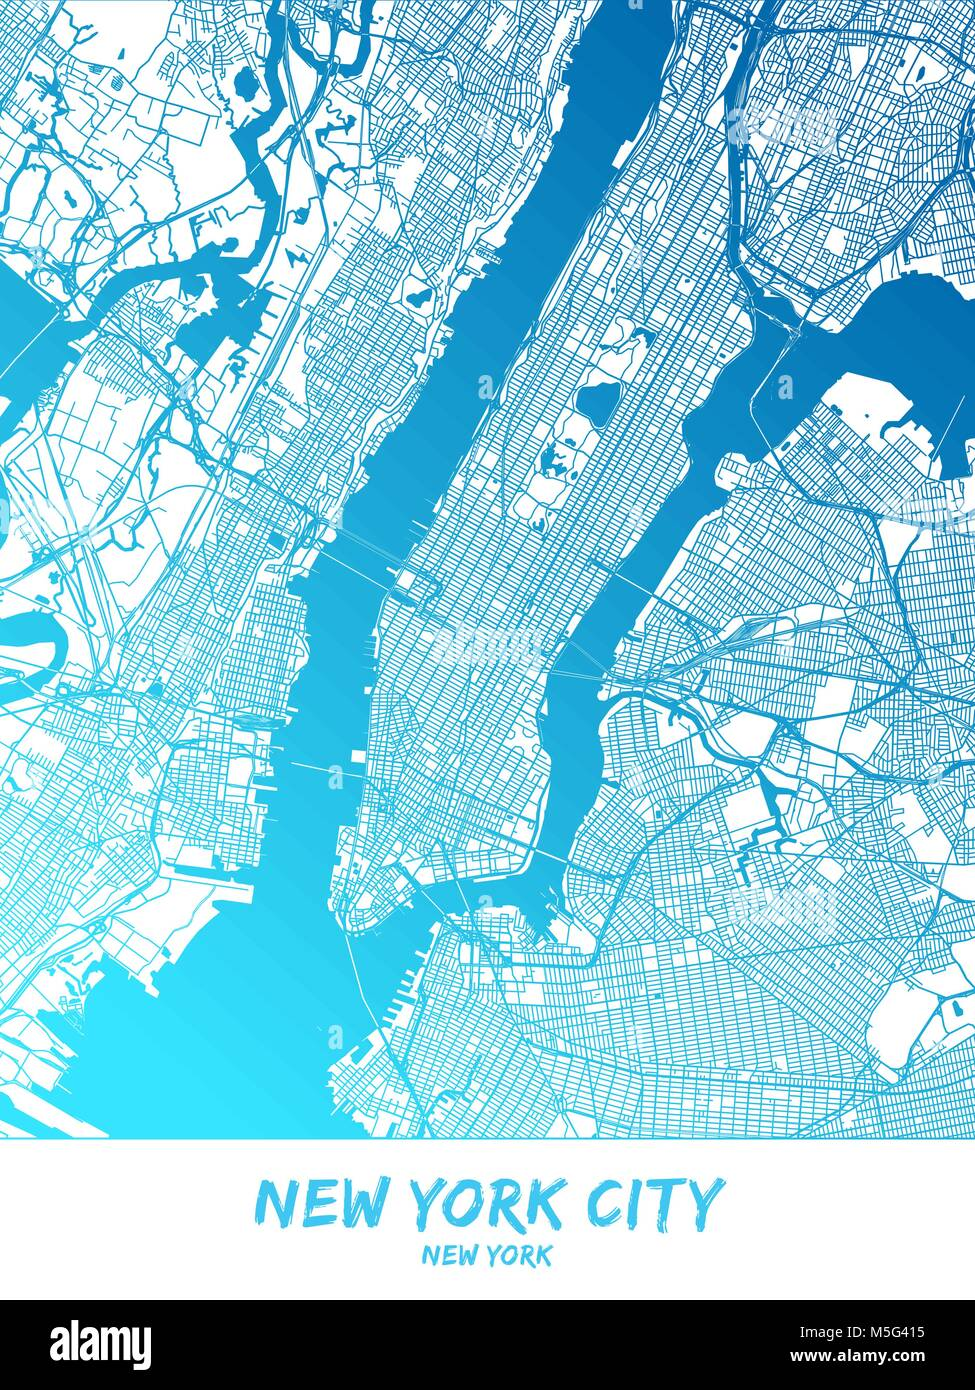 Map Of New York With Landmarks.New York City Downtown And Surroundings Map In Blue Shaded Version